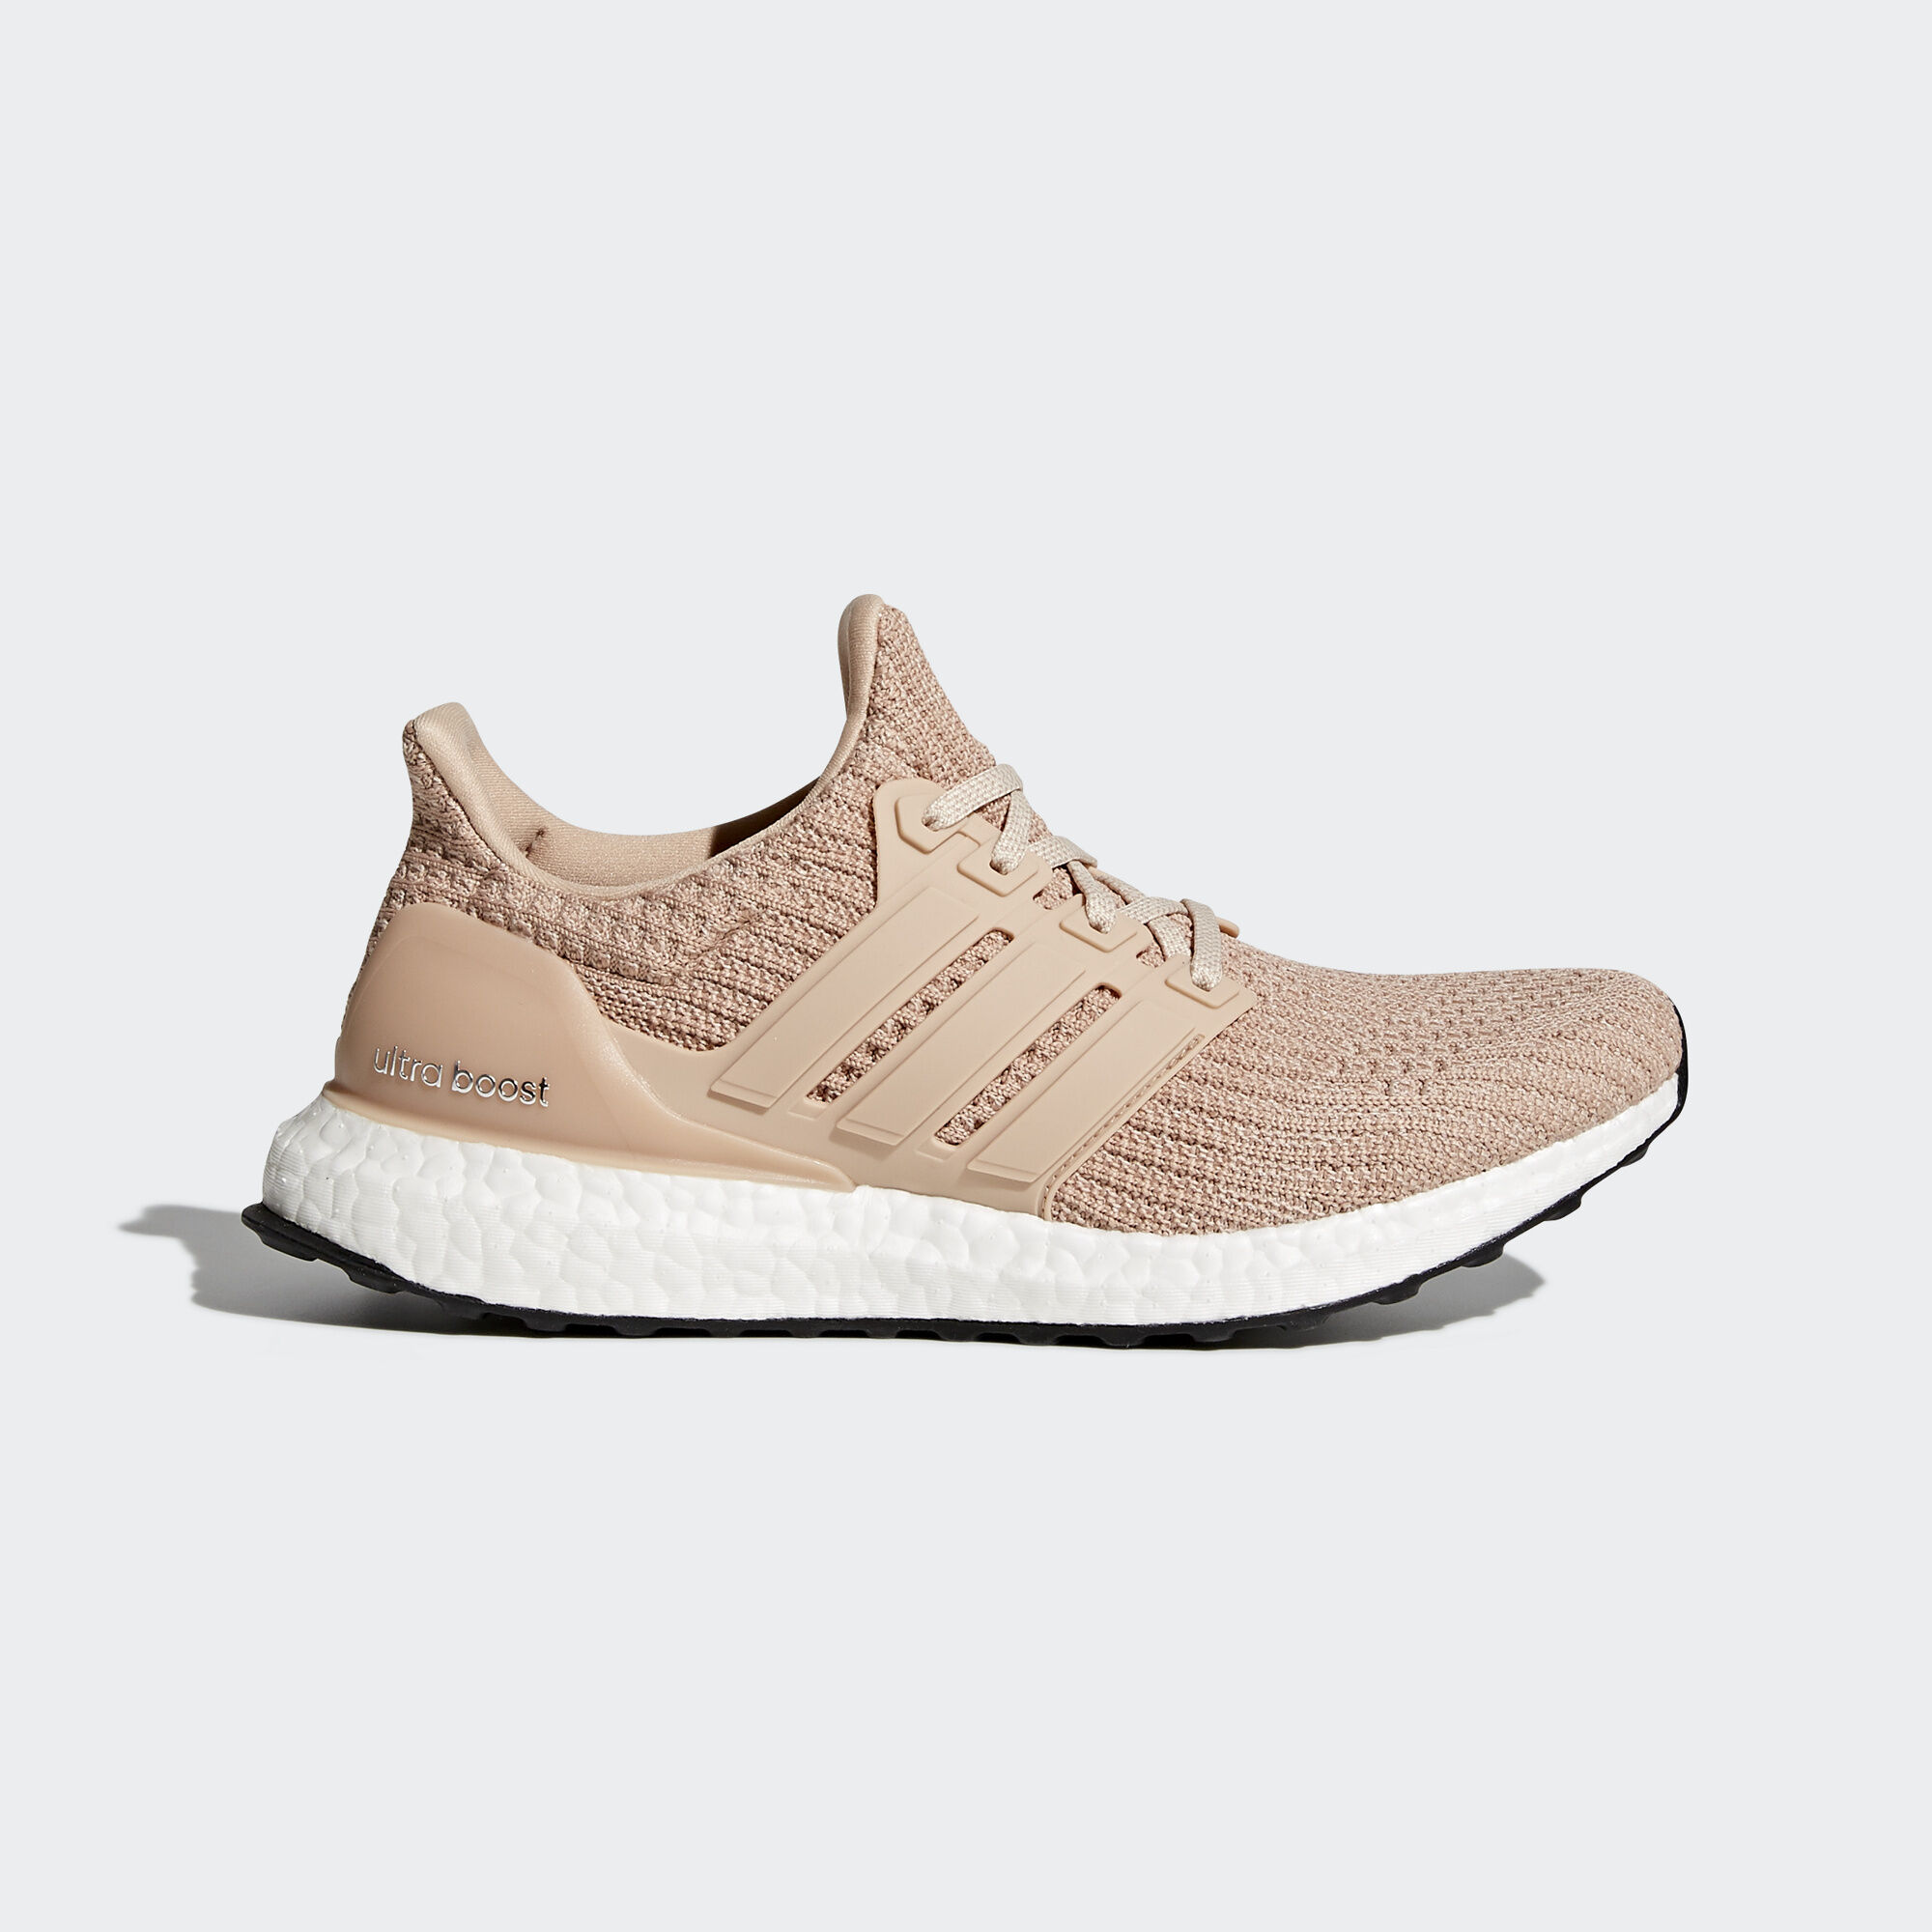 Adidas Ultra Boost 4.0 Ash cheap Pearl -Nude Color BB6309 Women